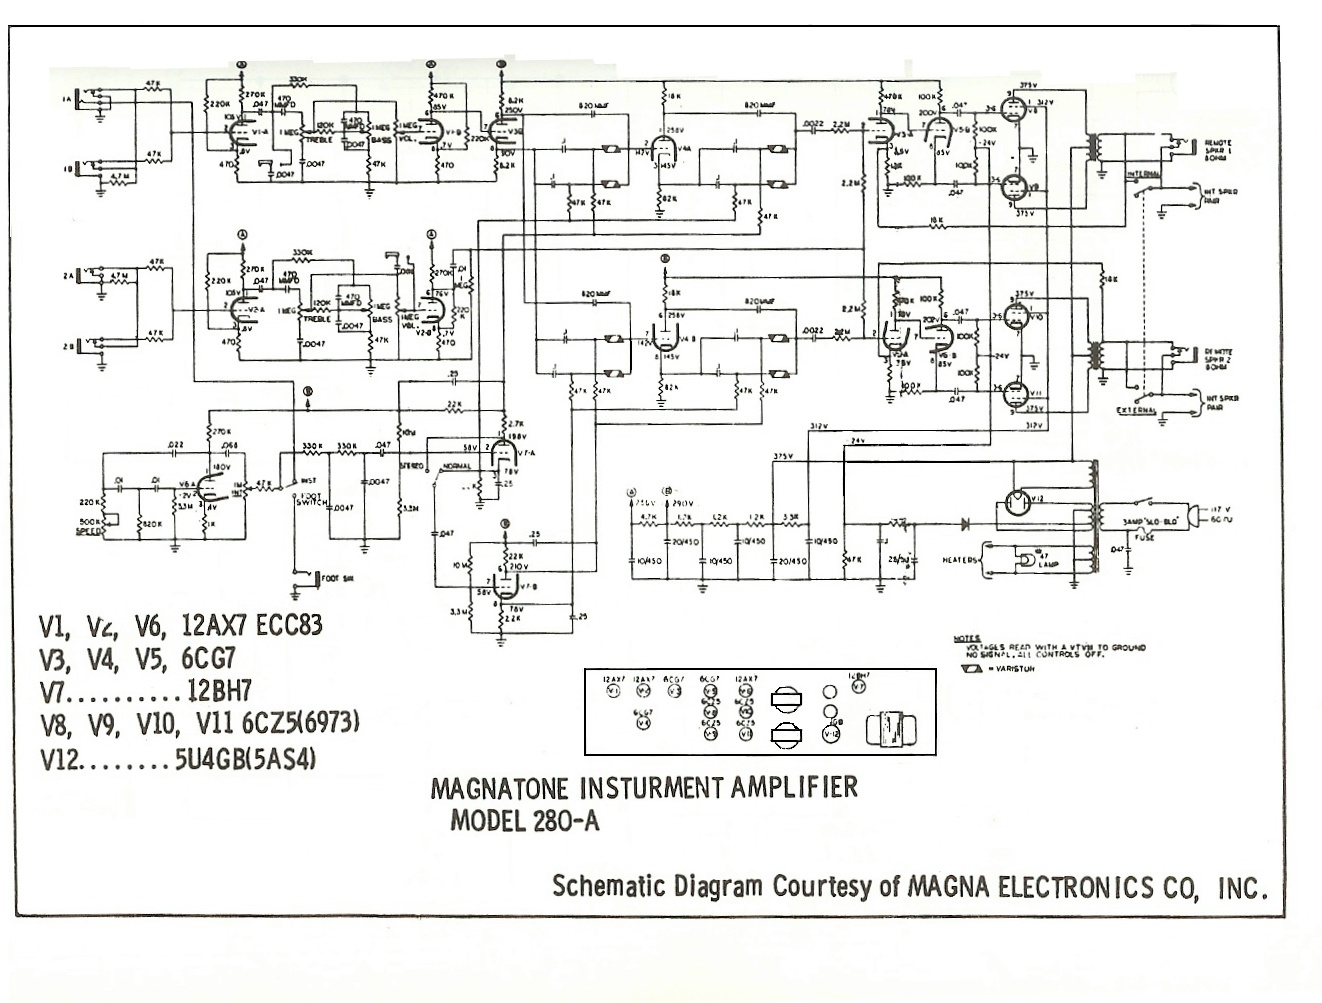 2007 Bmw 335xi Fuse Box Diagram. Bmw. Auto Fuse Box Diagram